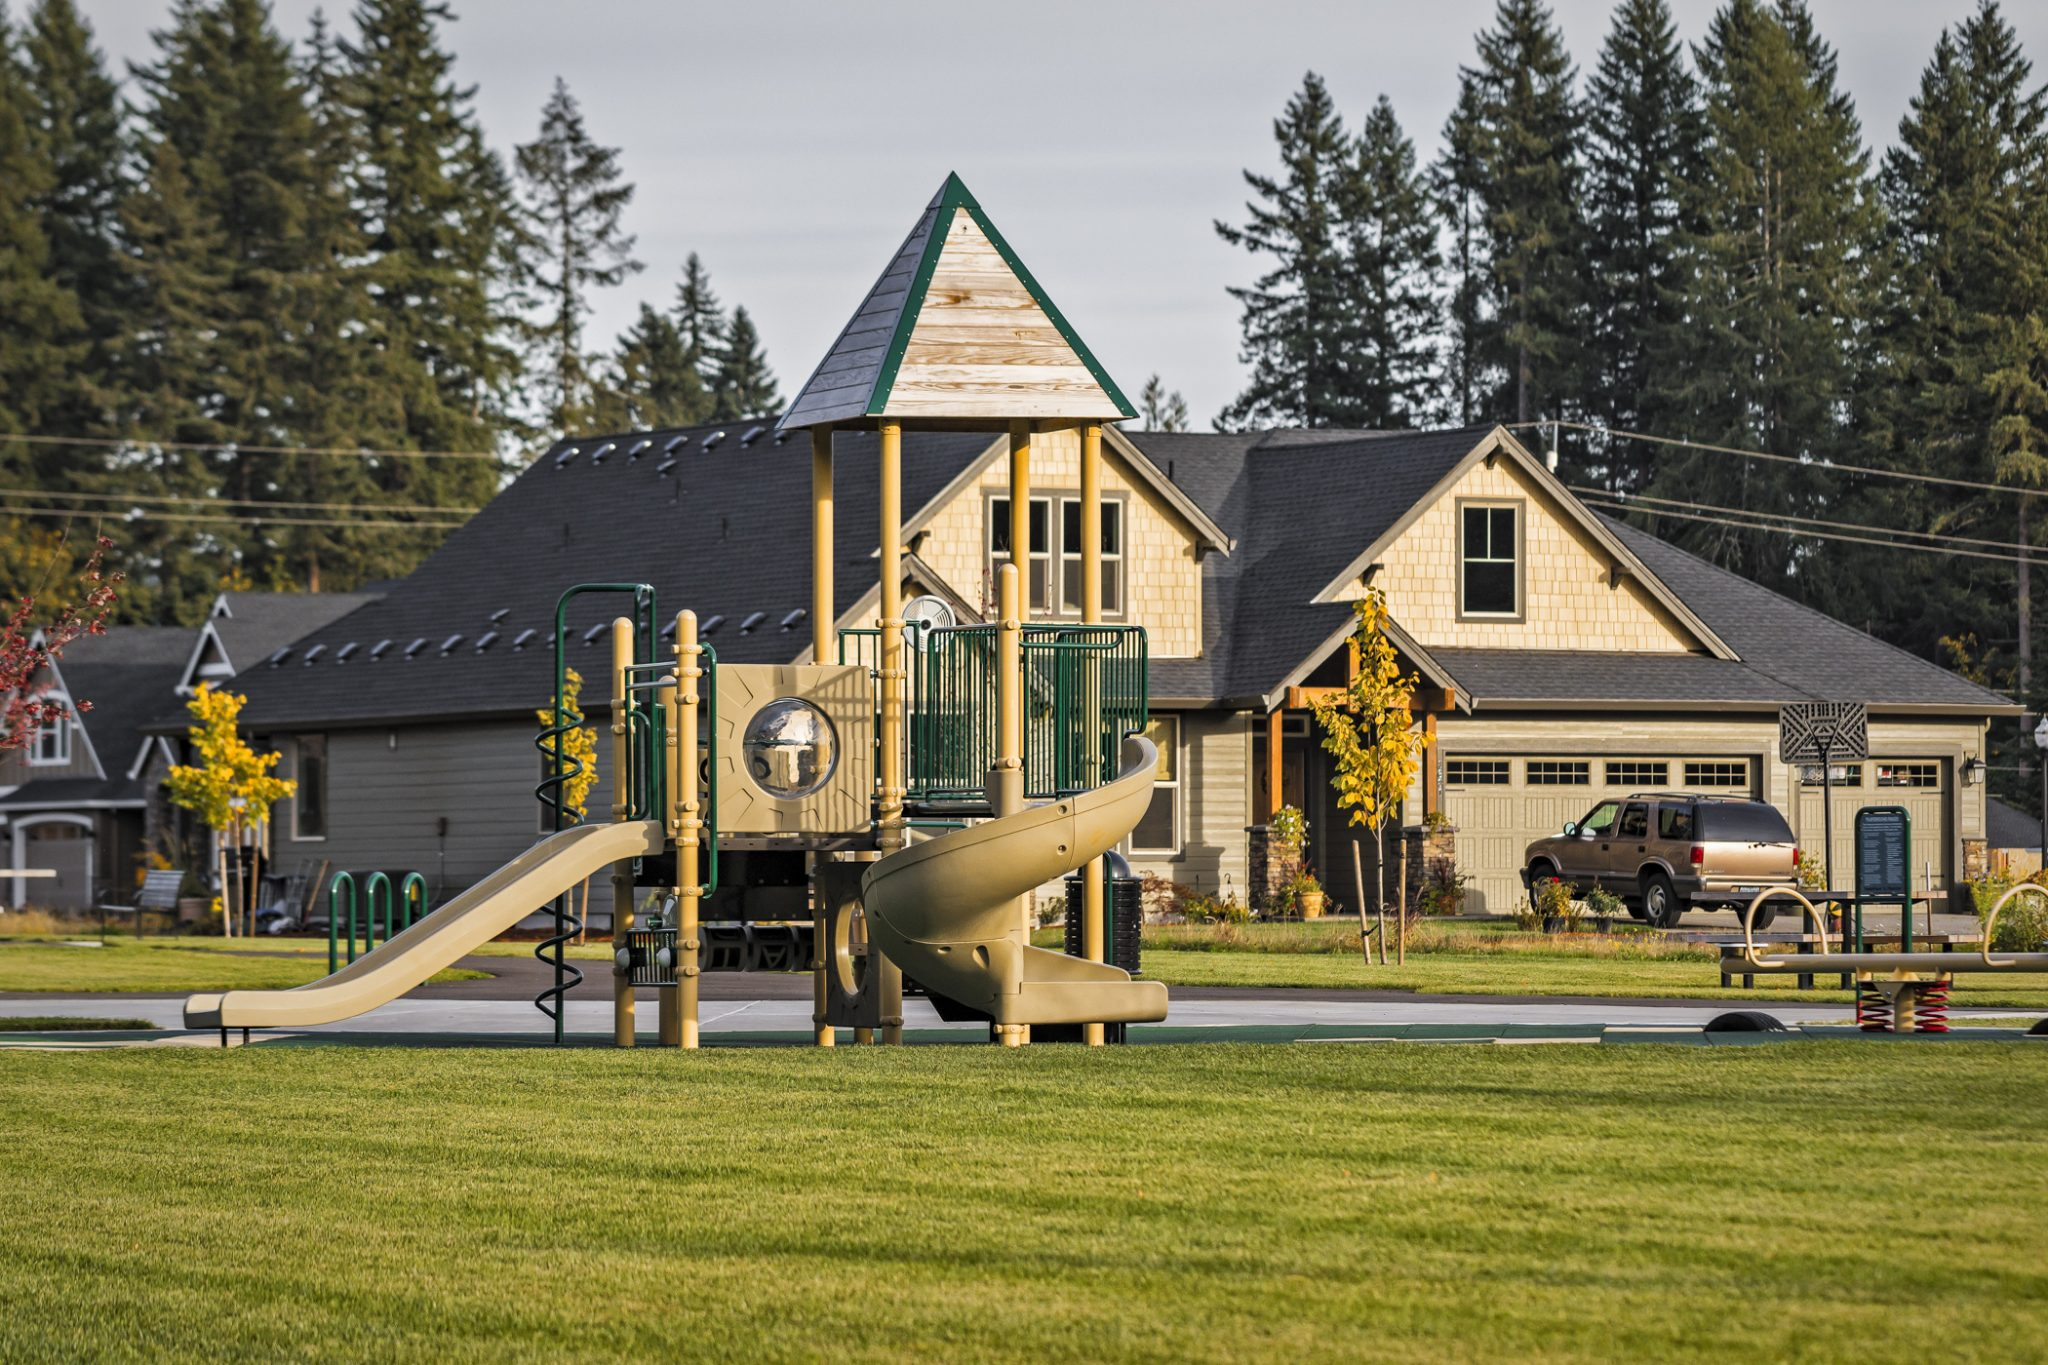 Whispering Pines Park Is Located Inside The Residential Development In Battle Ground Wa Client Wanted A Where Community Members